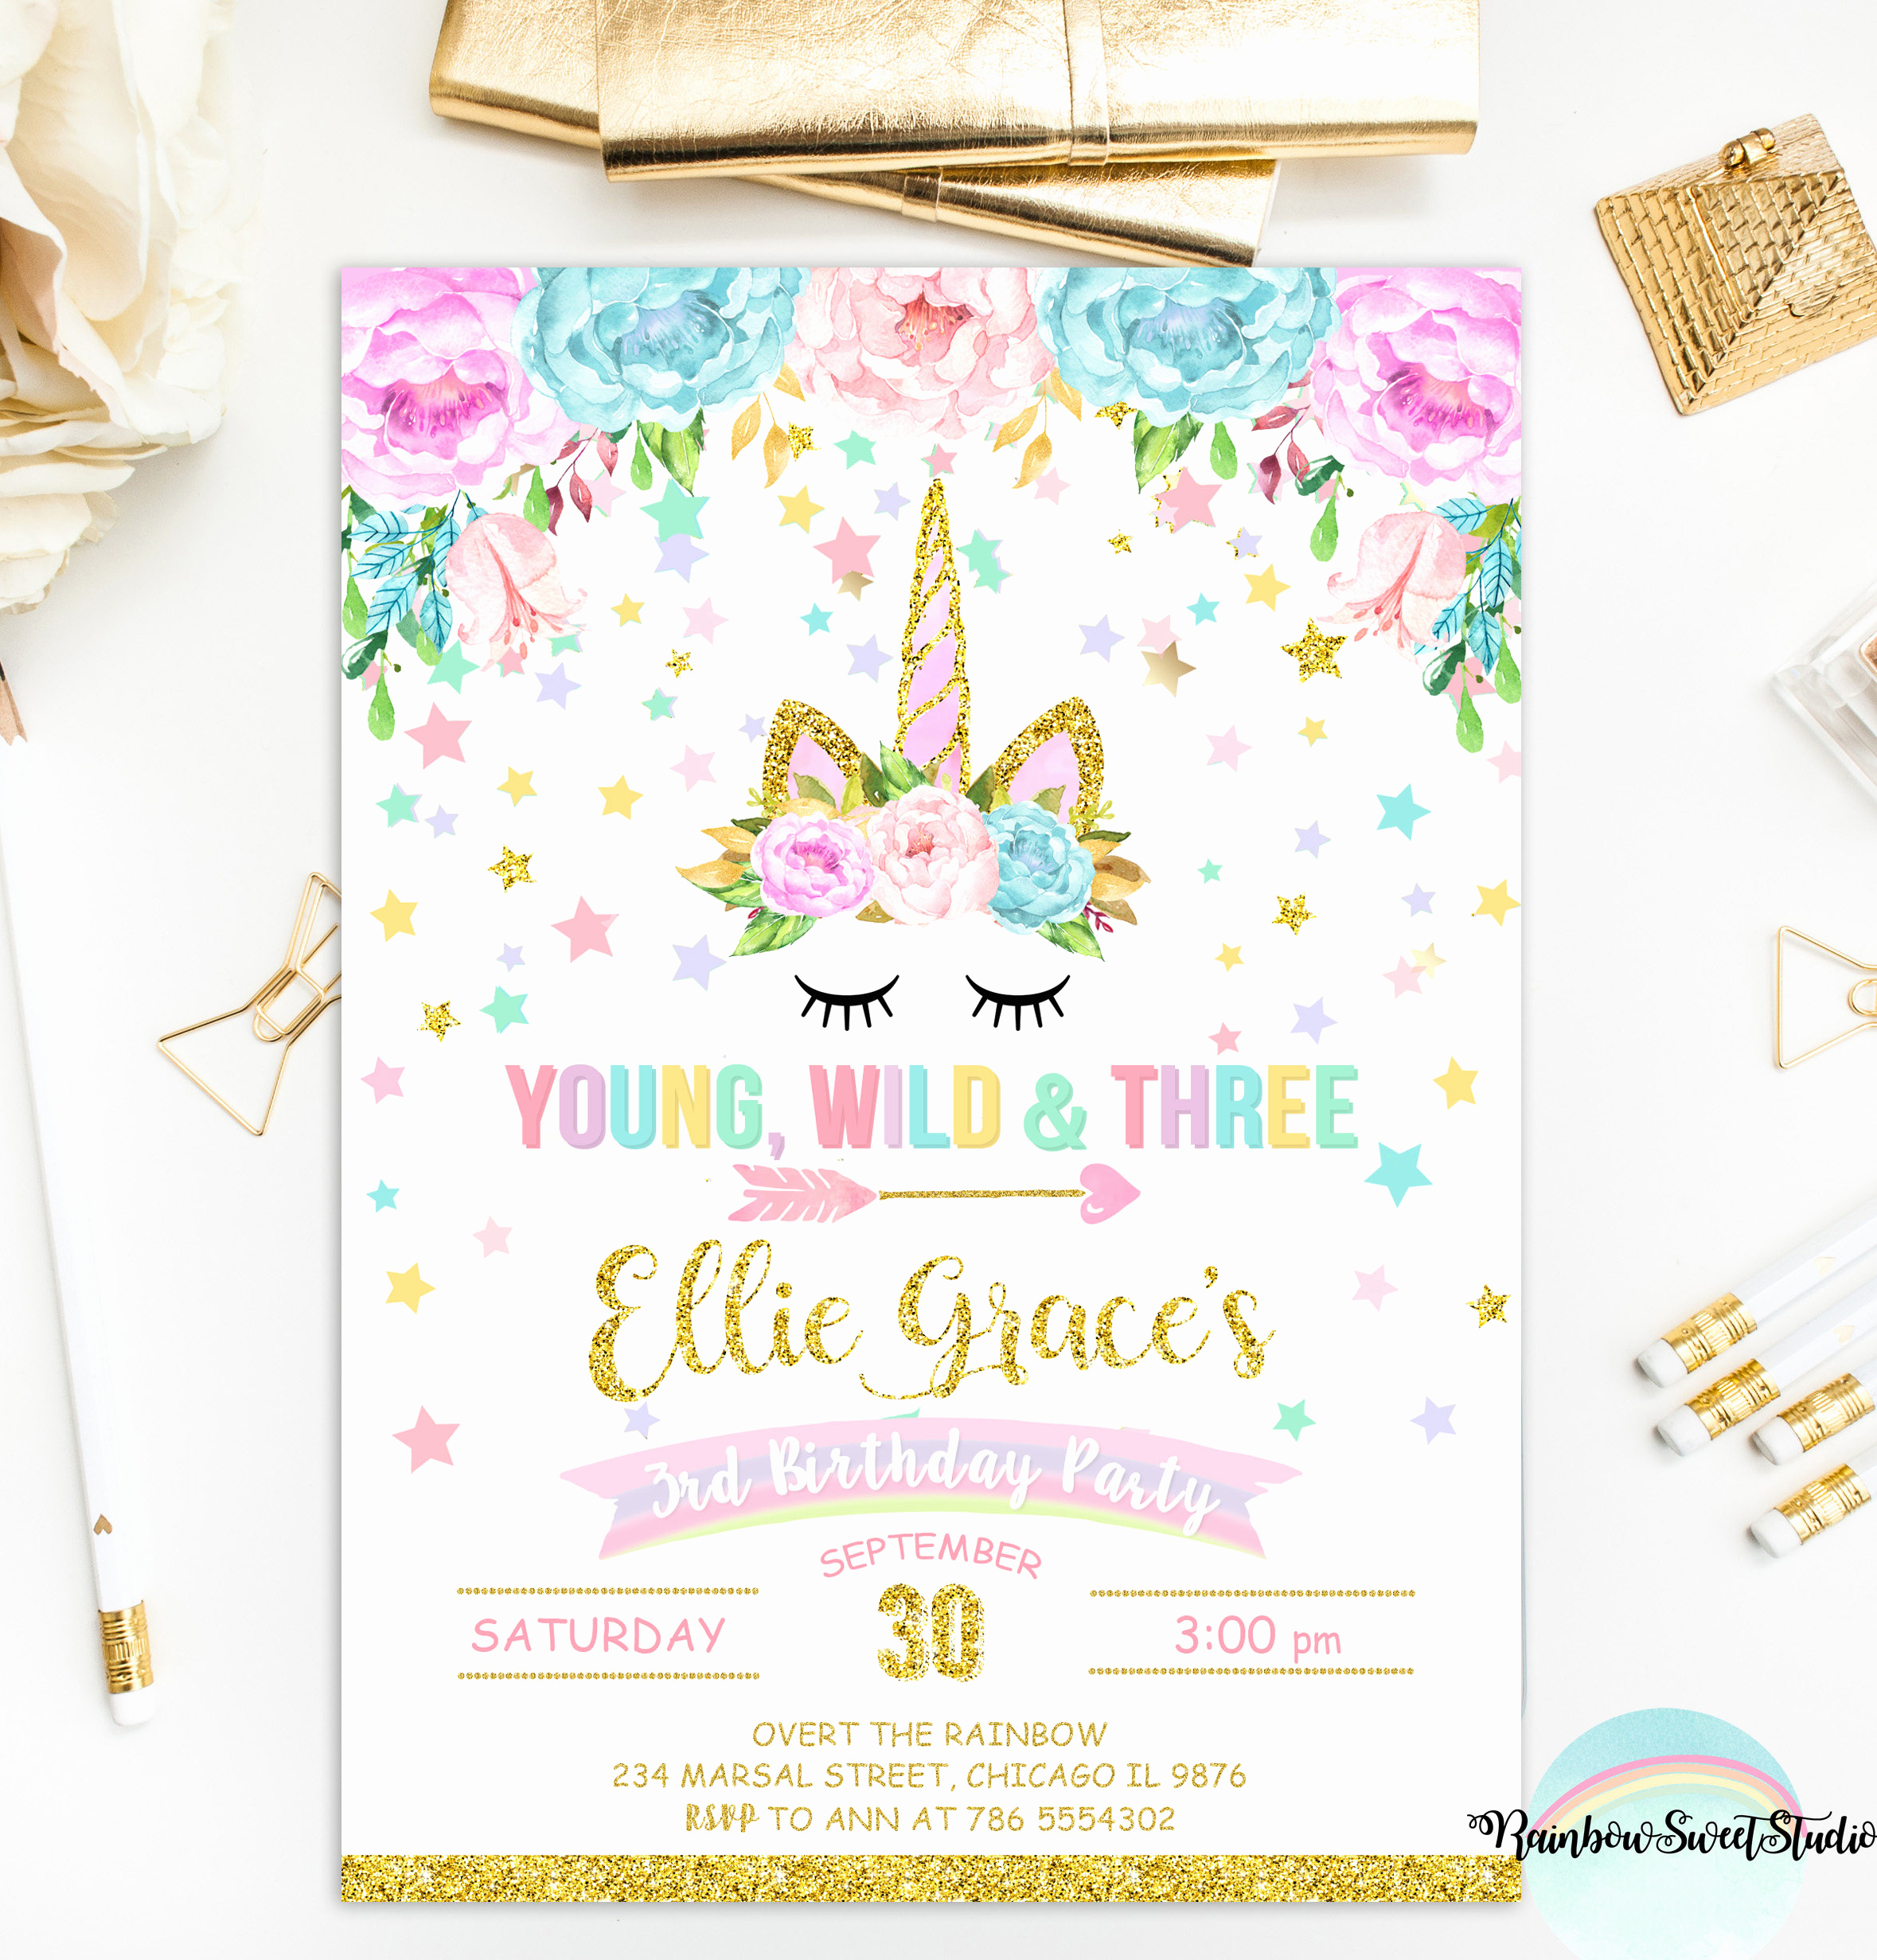 Free Unicorn Invitation Template Lovely Unicorn Young Wild and Three Invitation Unicorn Birthday